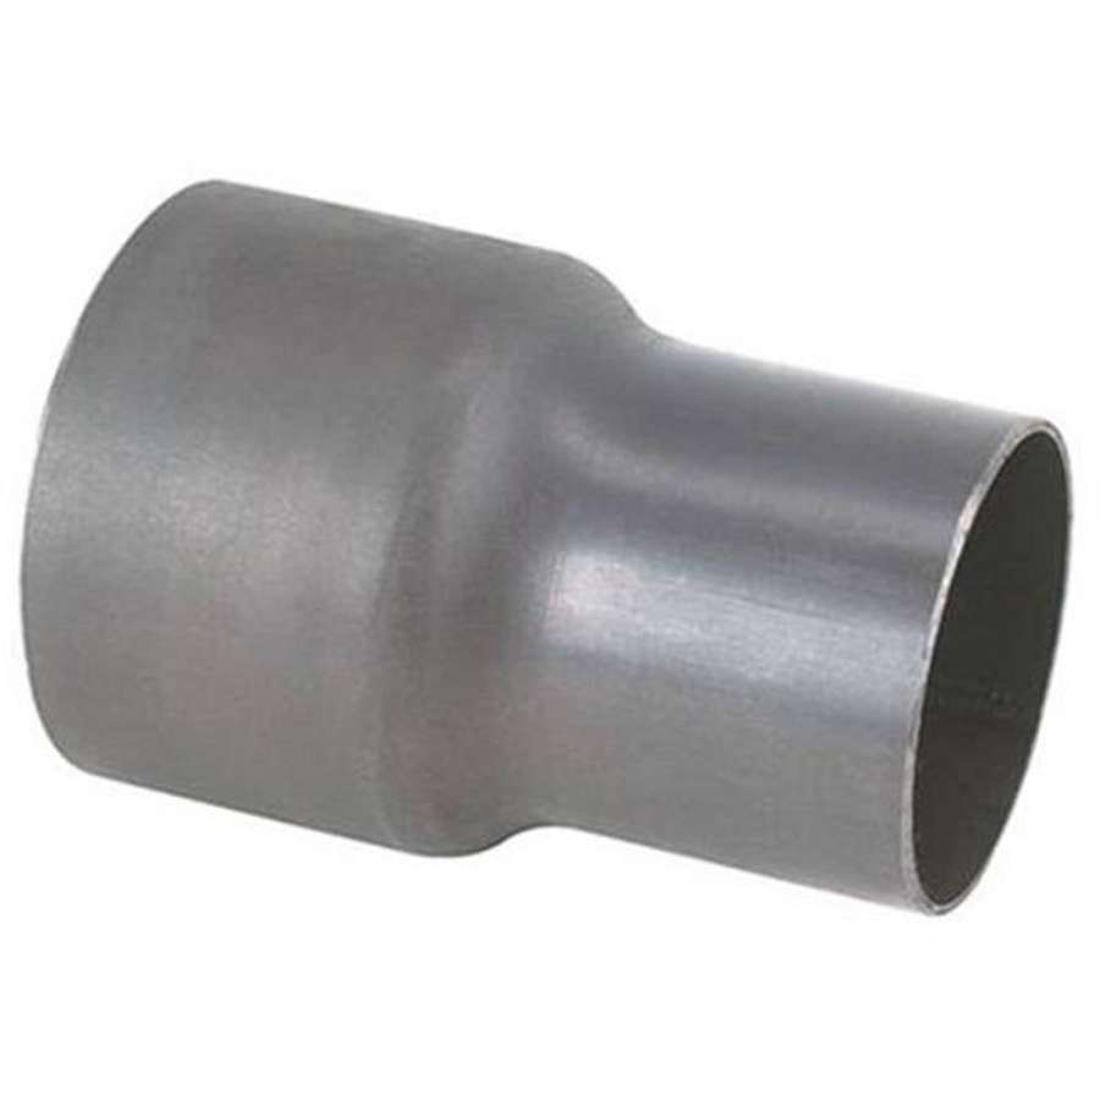 "EXHAUST PIPE REDUCER 3"" 76MM - 3.5"" 89MM MILD STEEL image"